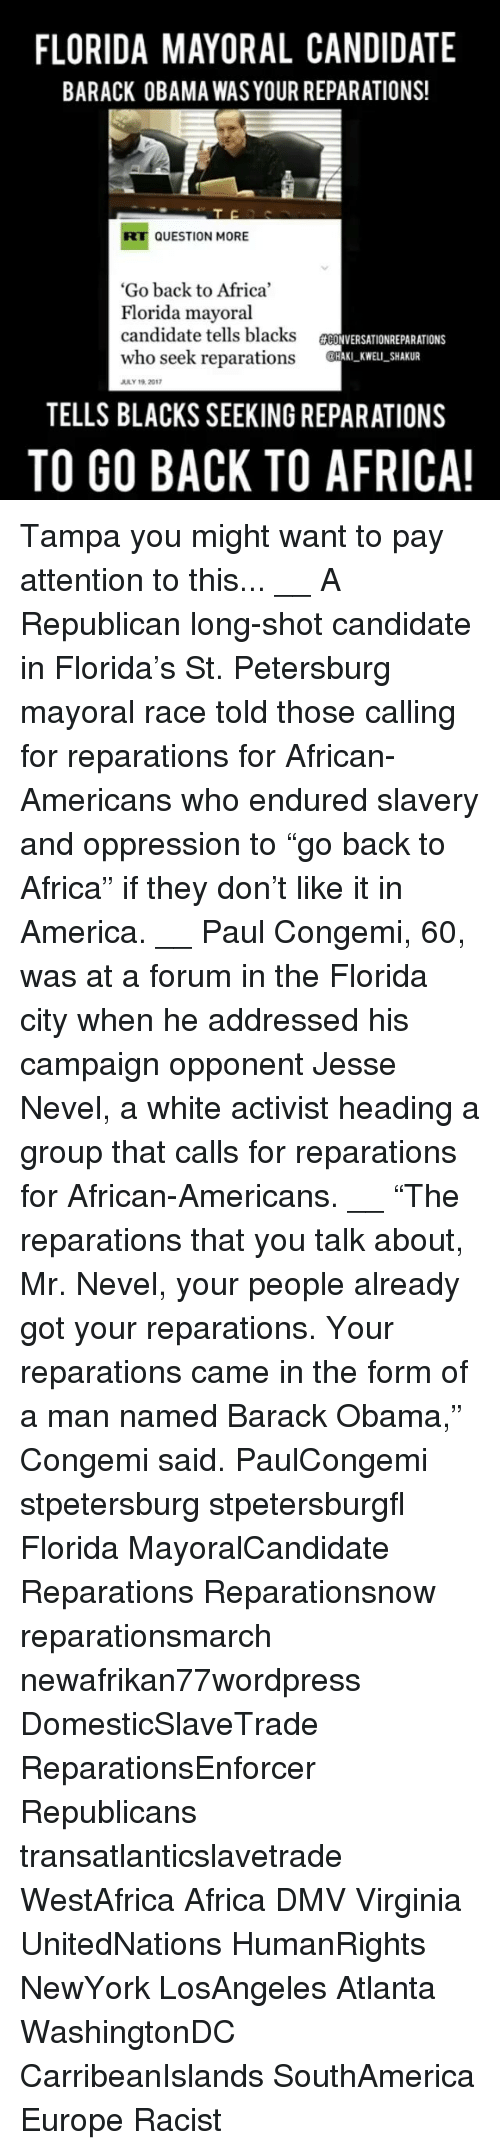 Family fun forbidden fruit pastebin - Africa America And Dmv Florida Mayoral Candidate Barack Obama Was Your Reparations